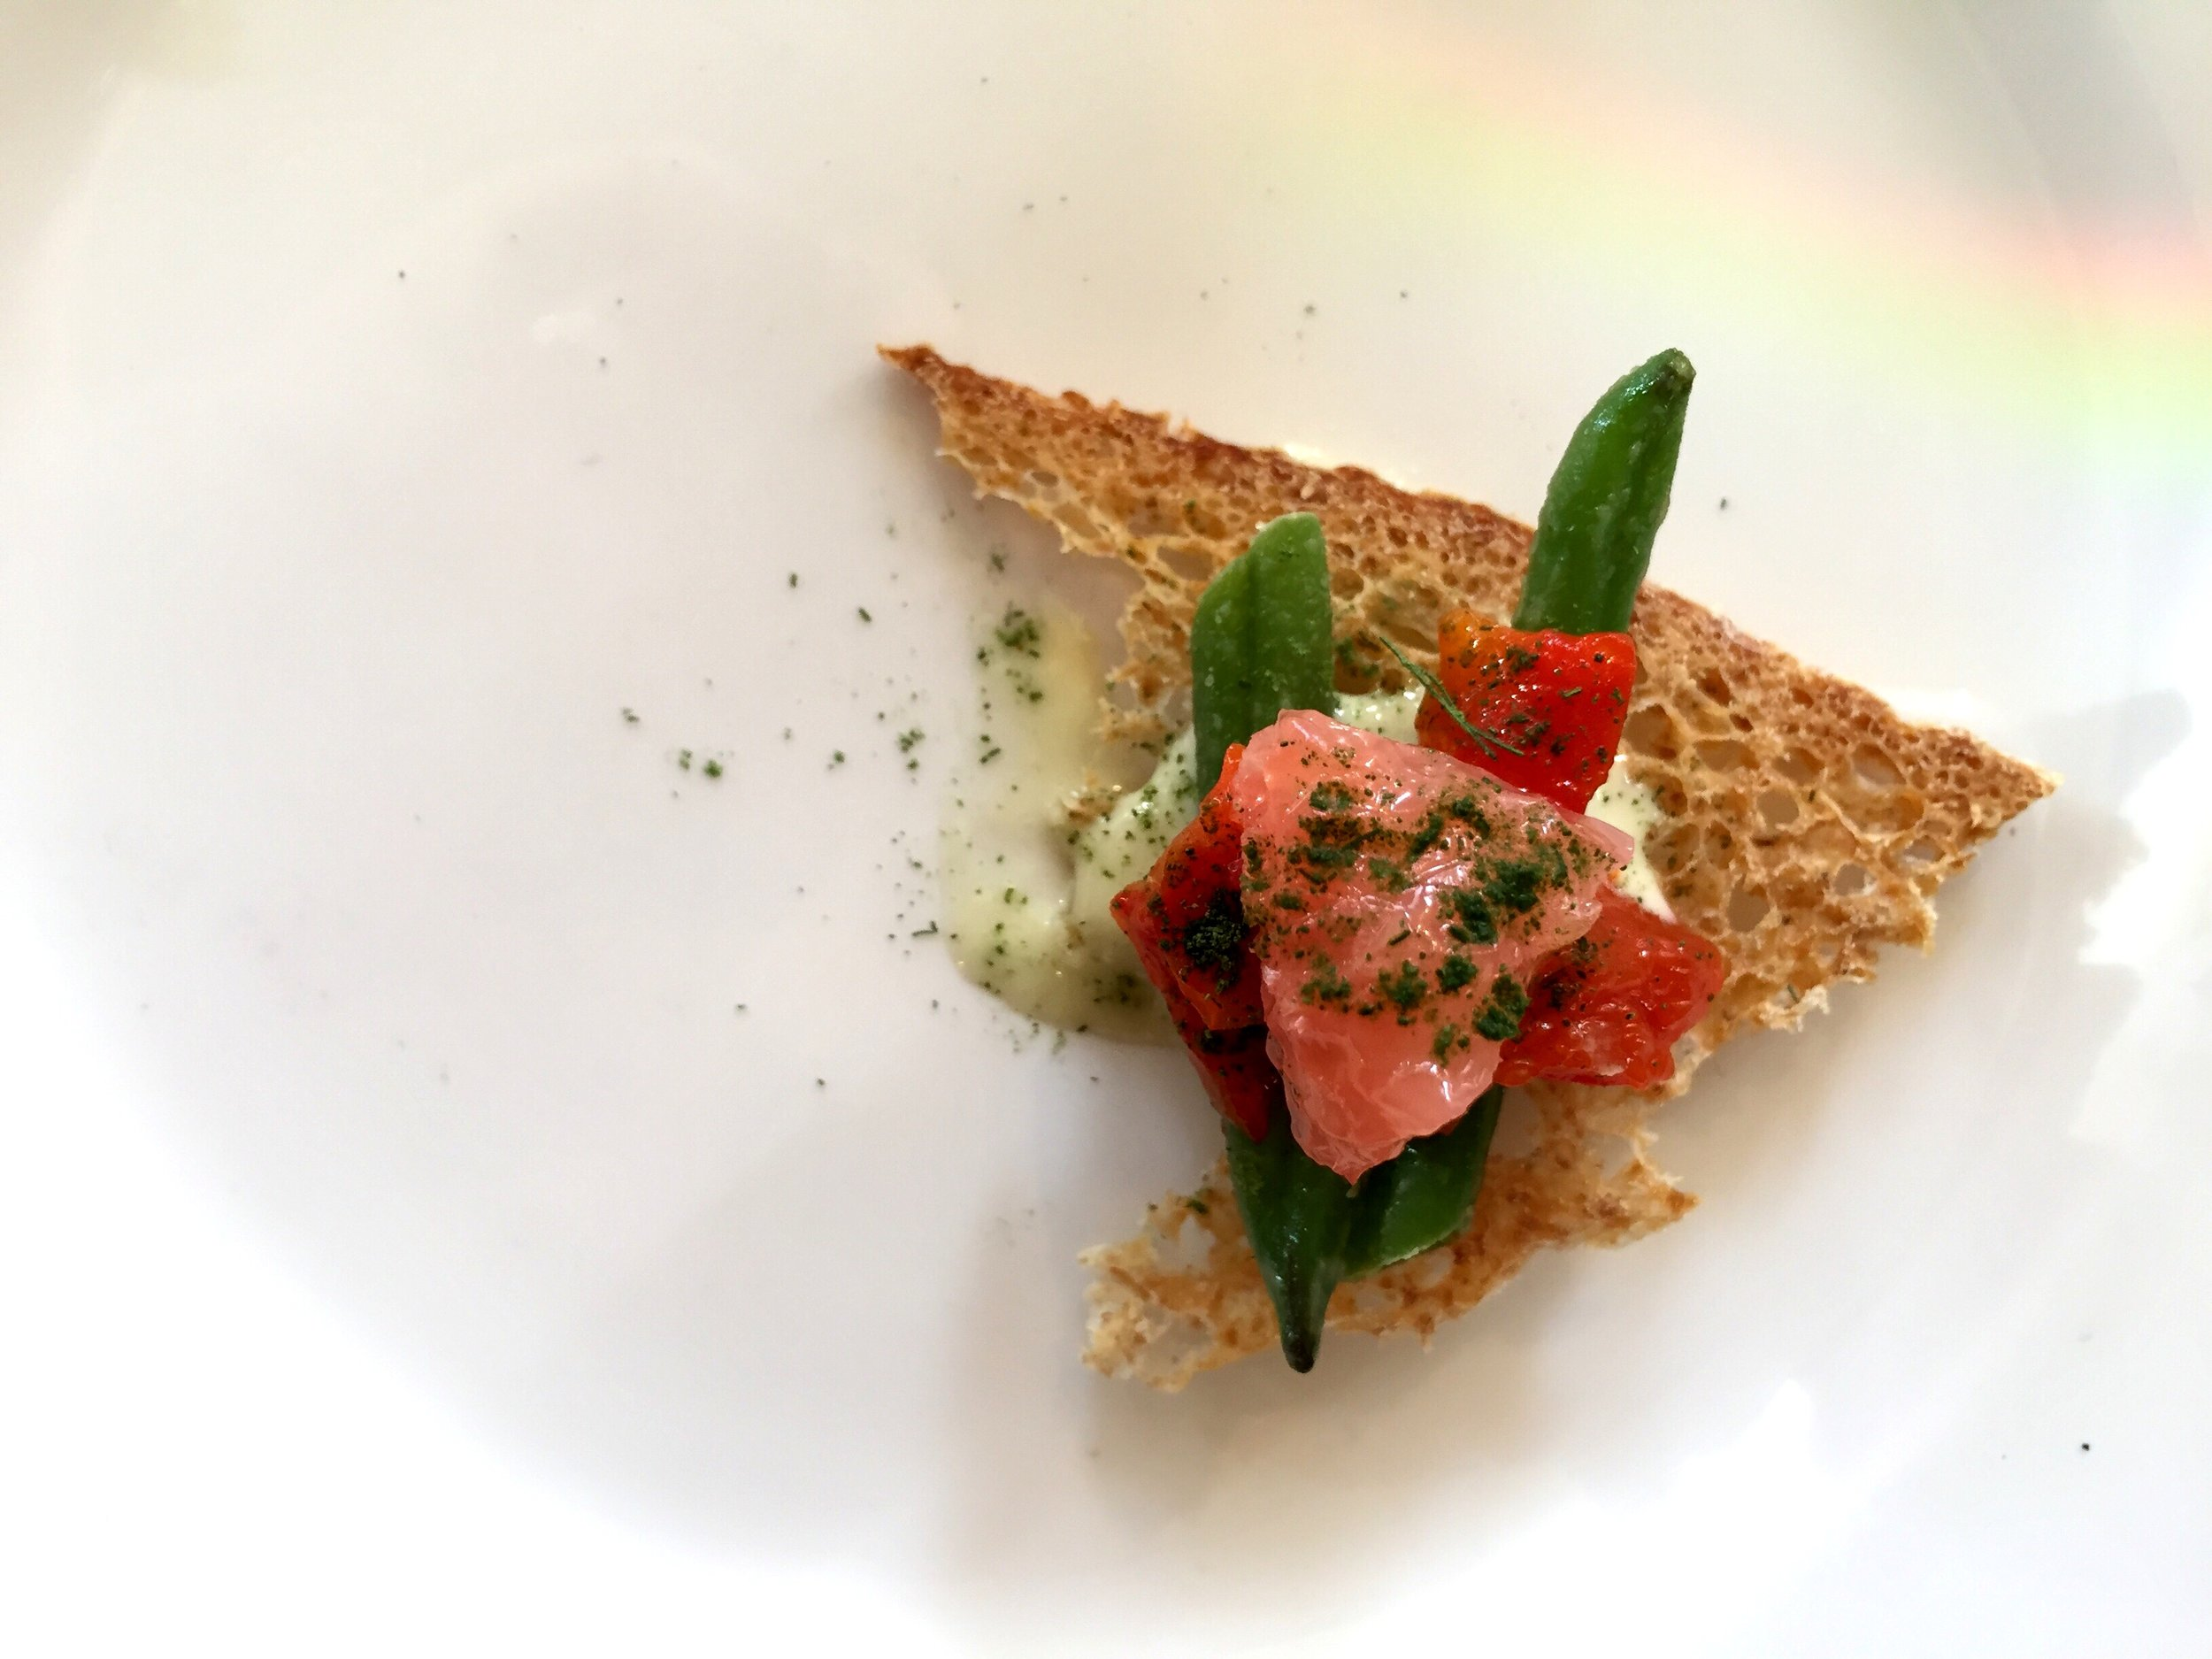 3-an-amuse-bouche-at-rouge_30457186812_o.jpg